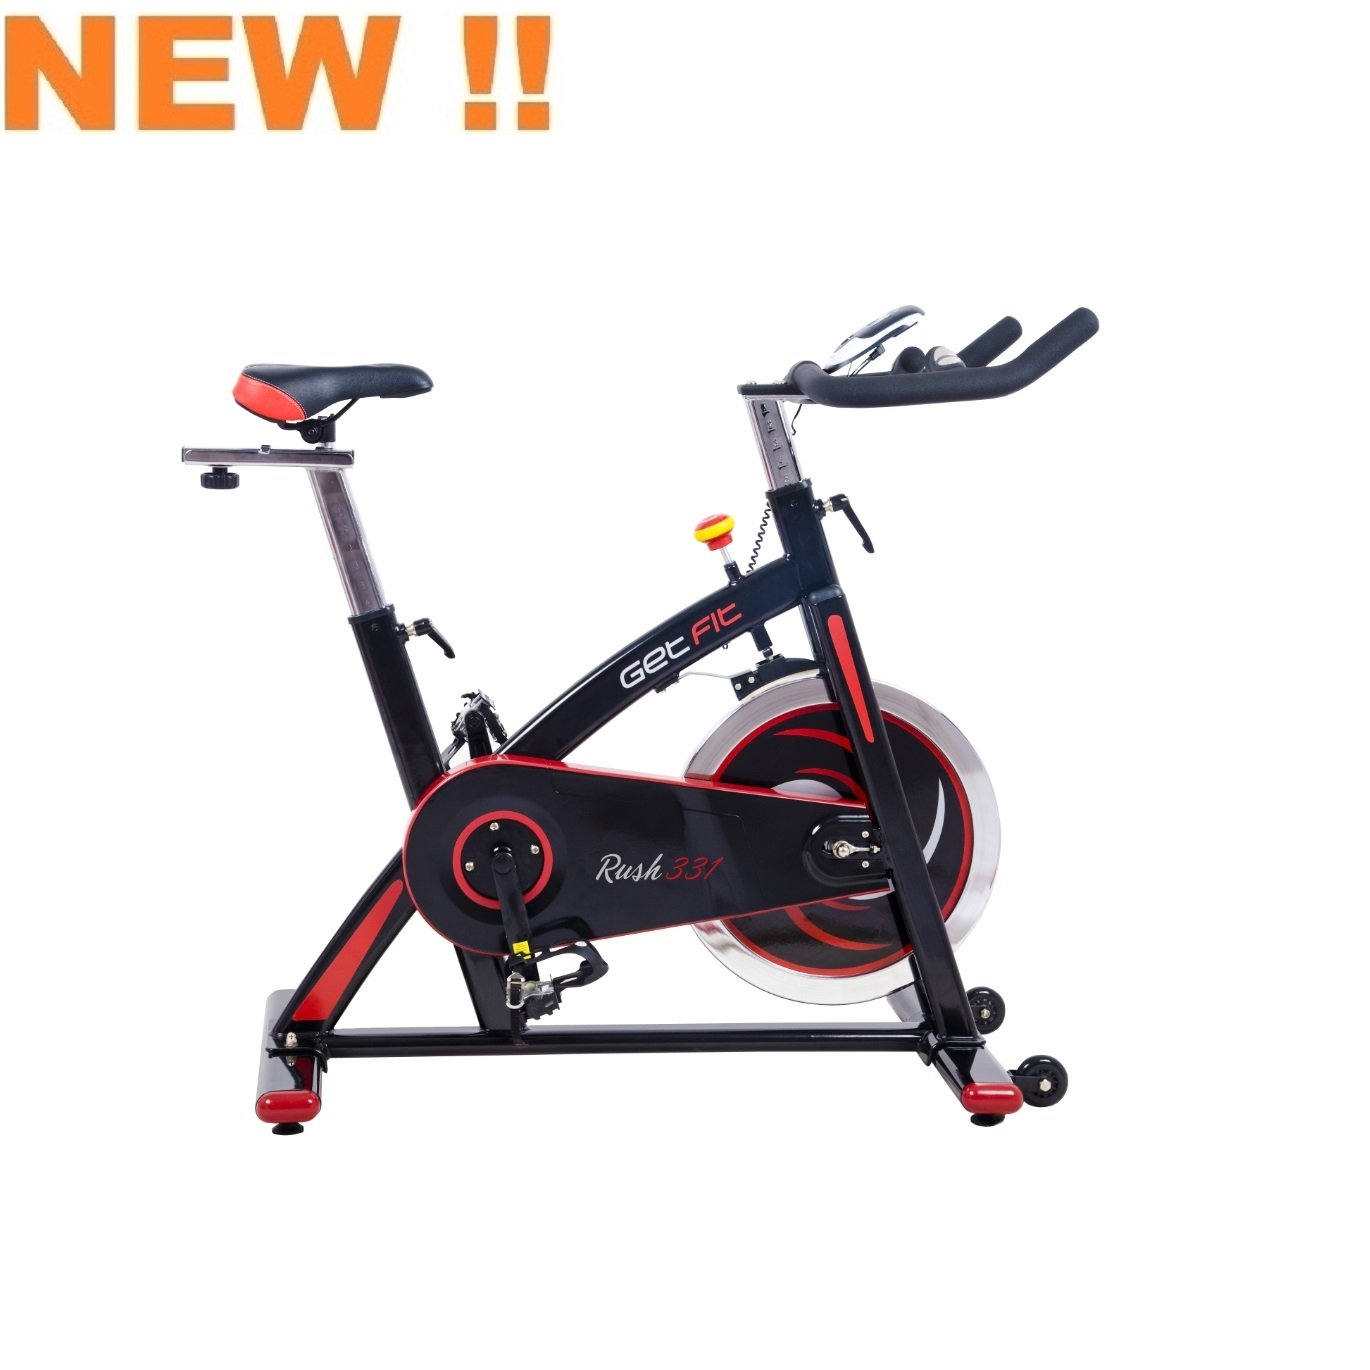 spinbike Rush 331 Get Fit: Amazon.es: Deportes y aire libre